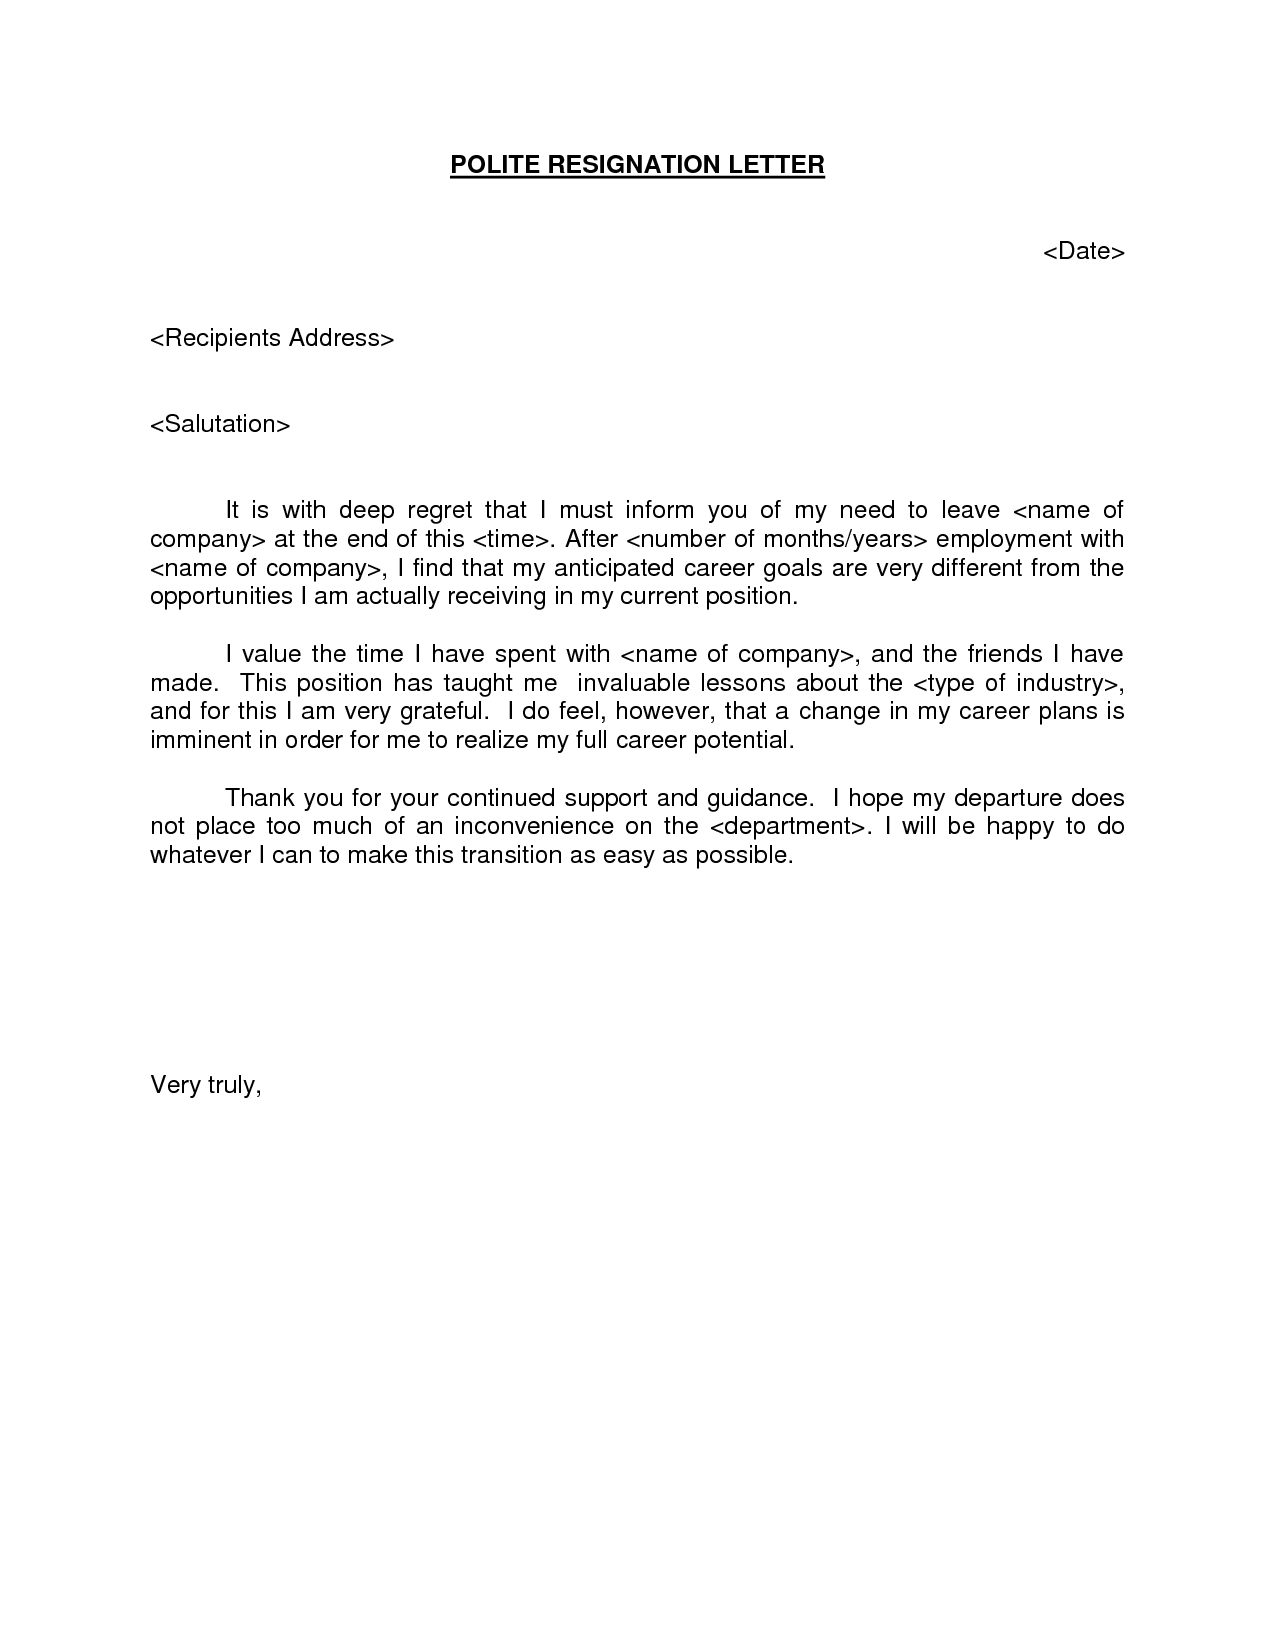 Sample Format for Producing a Page of Resignation